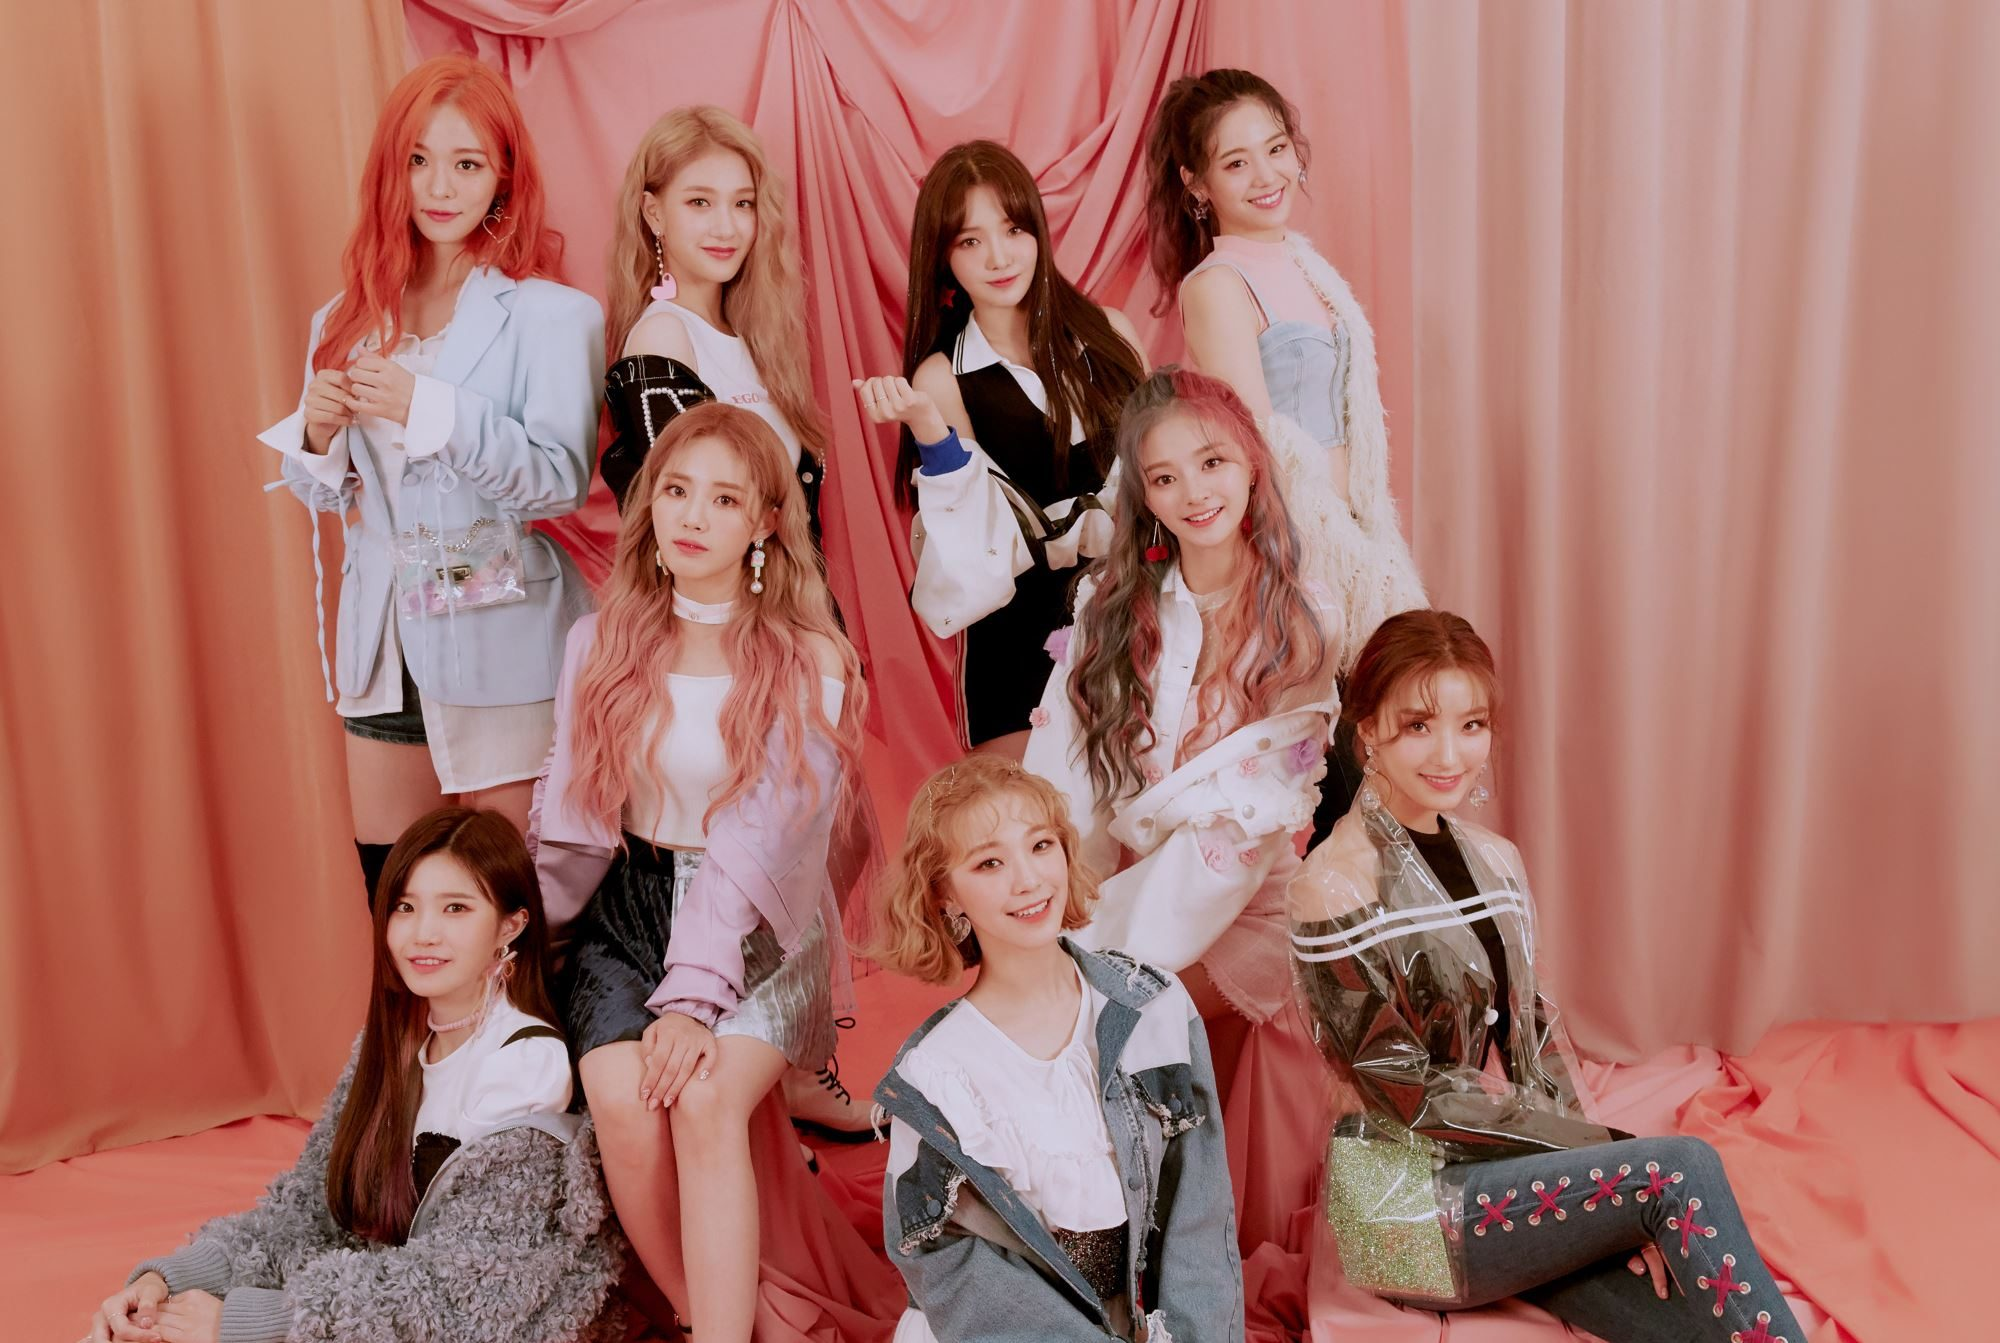 fromis_9 From 9